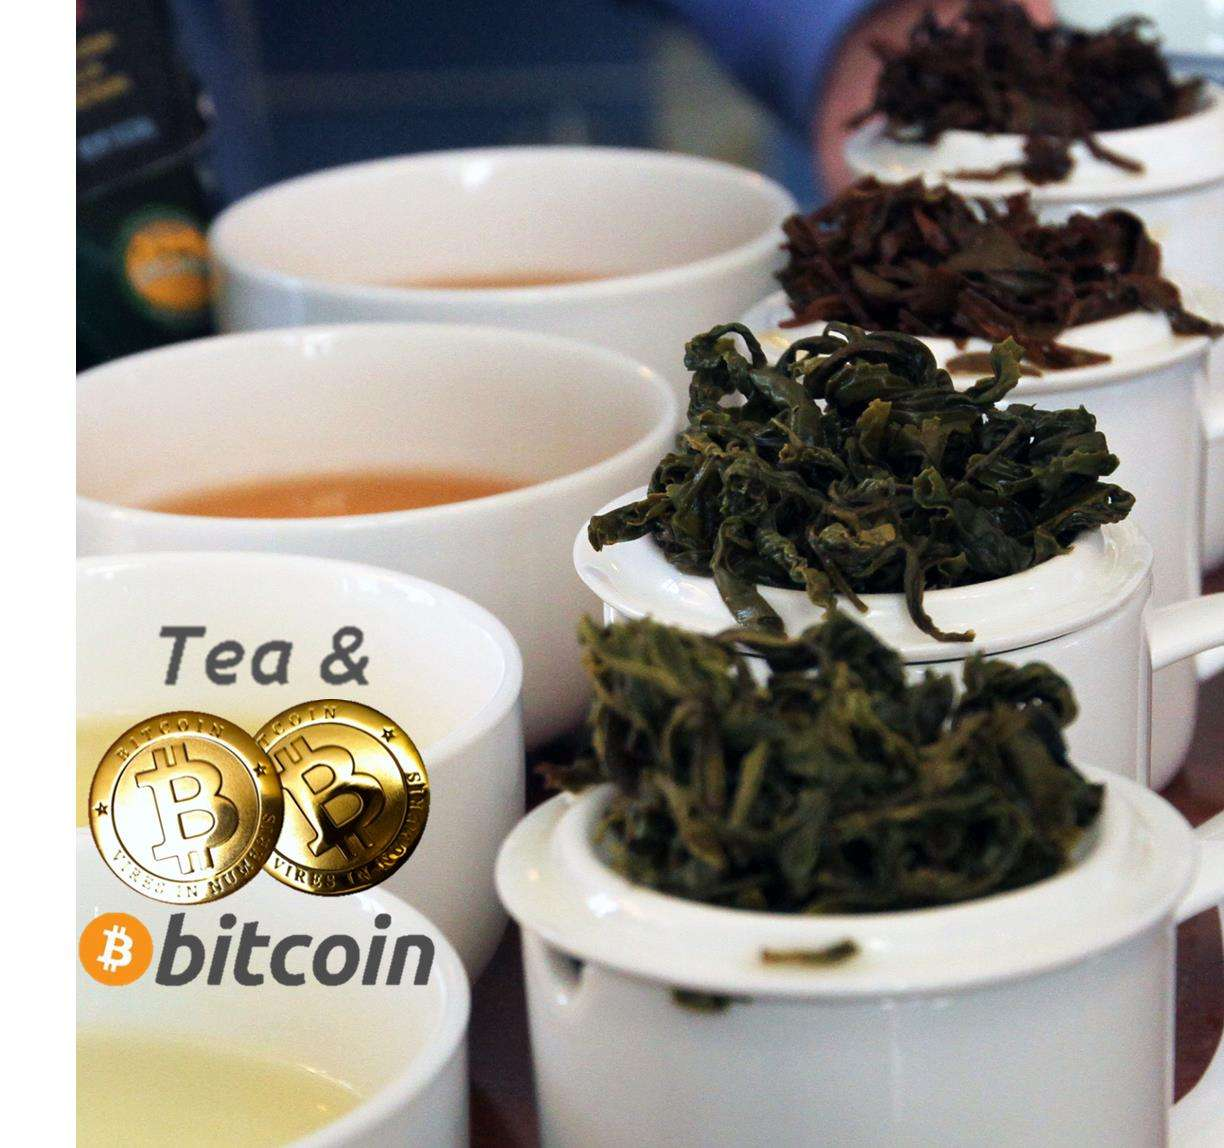 What's Bitcoin & what''s tea gotta do with It?